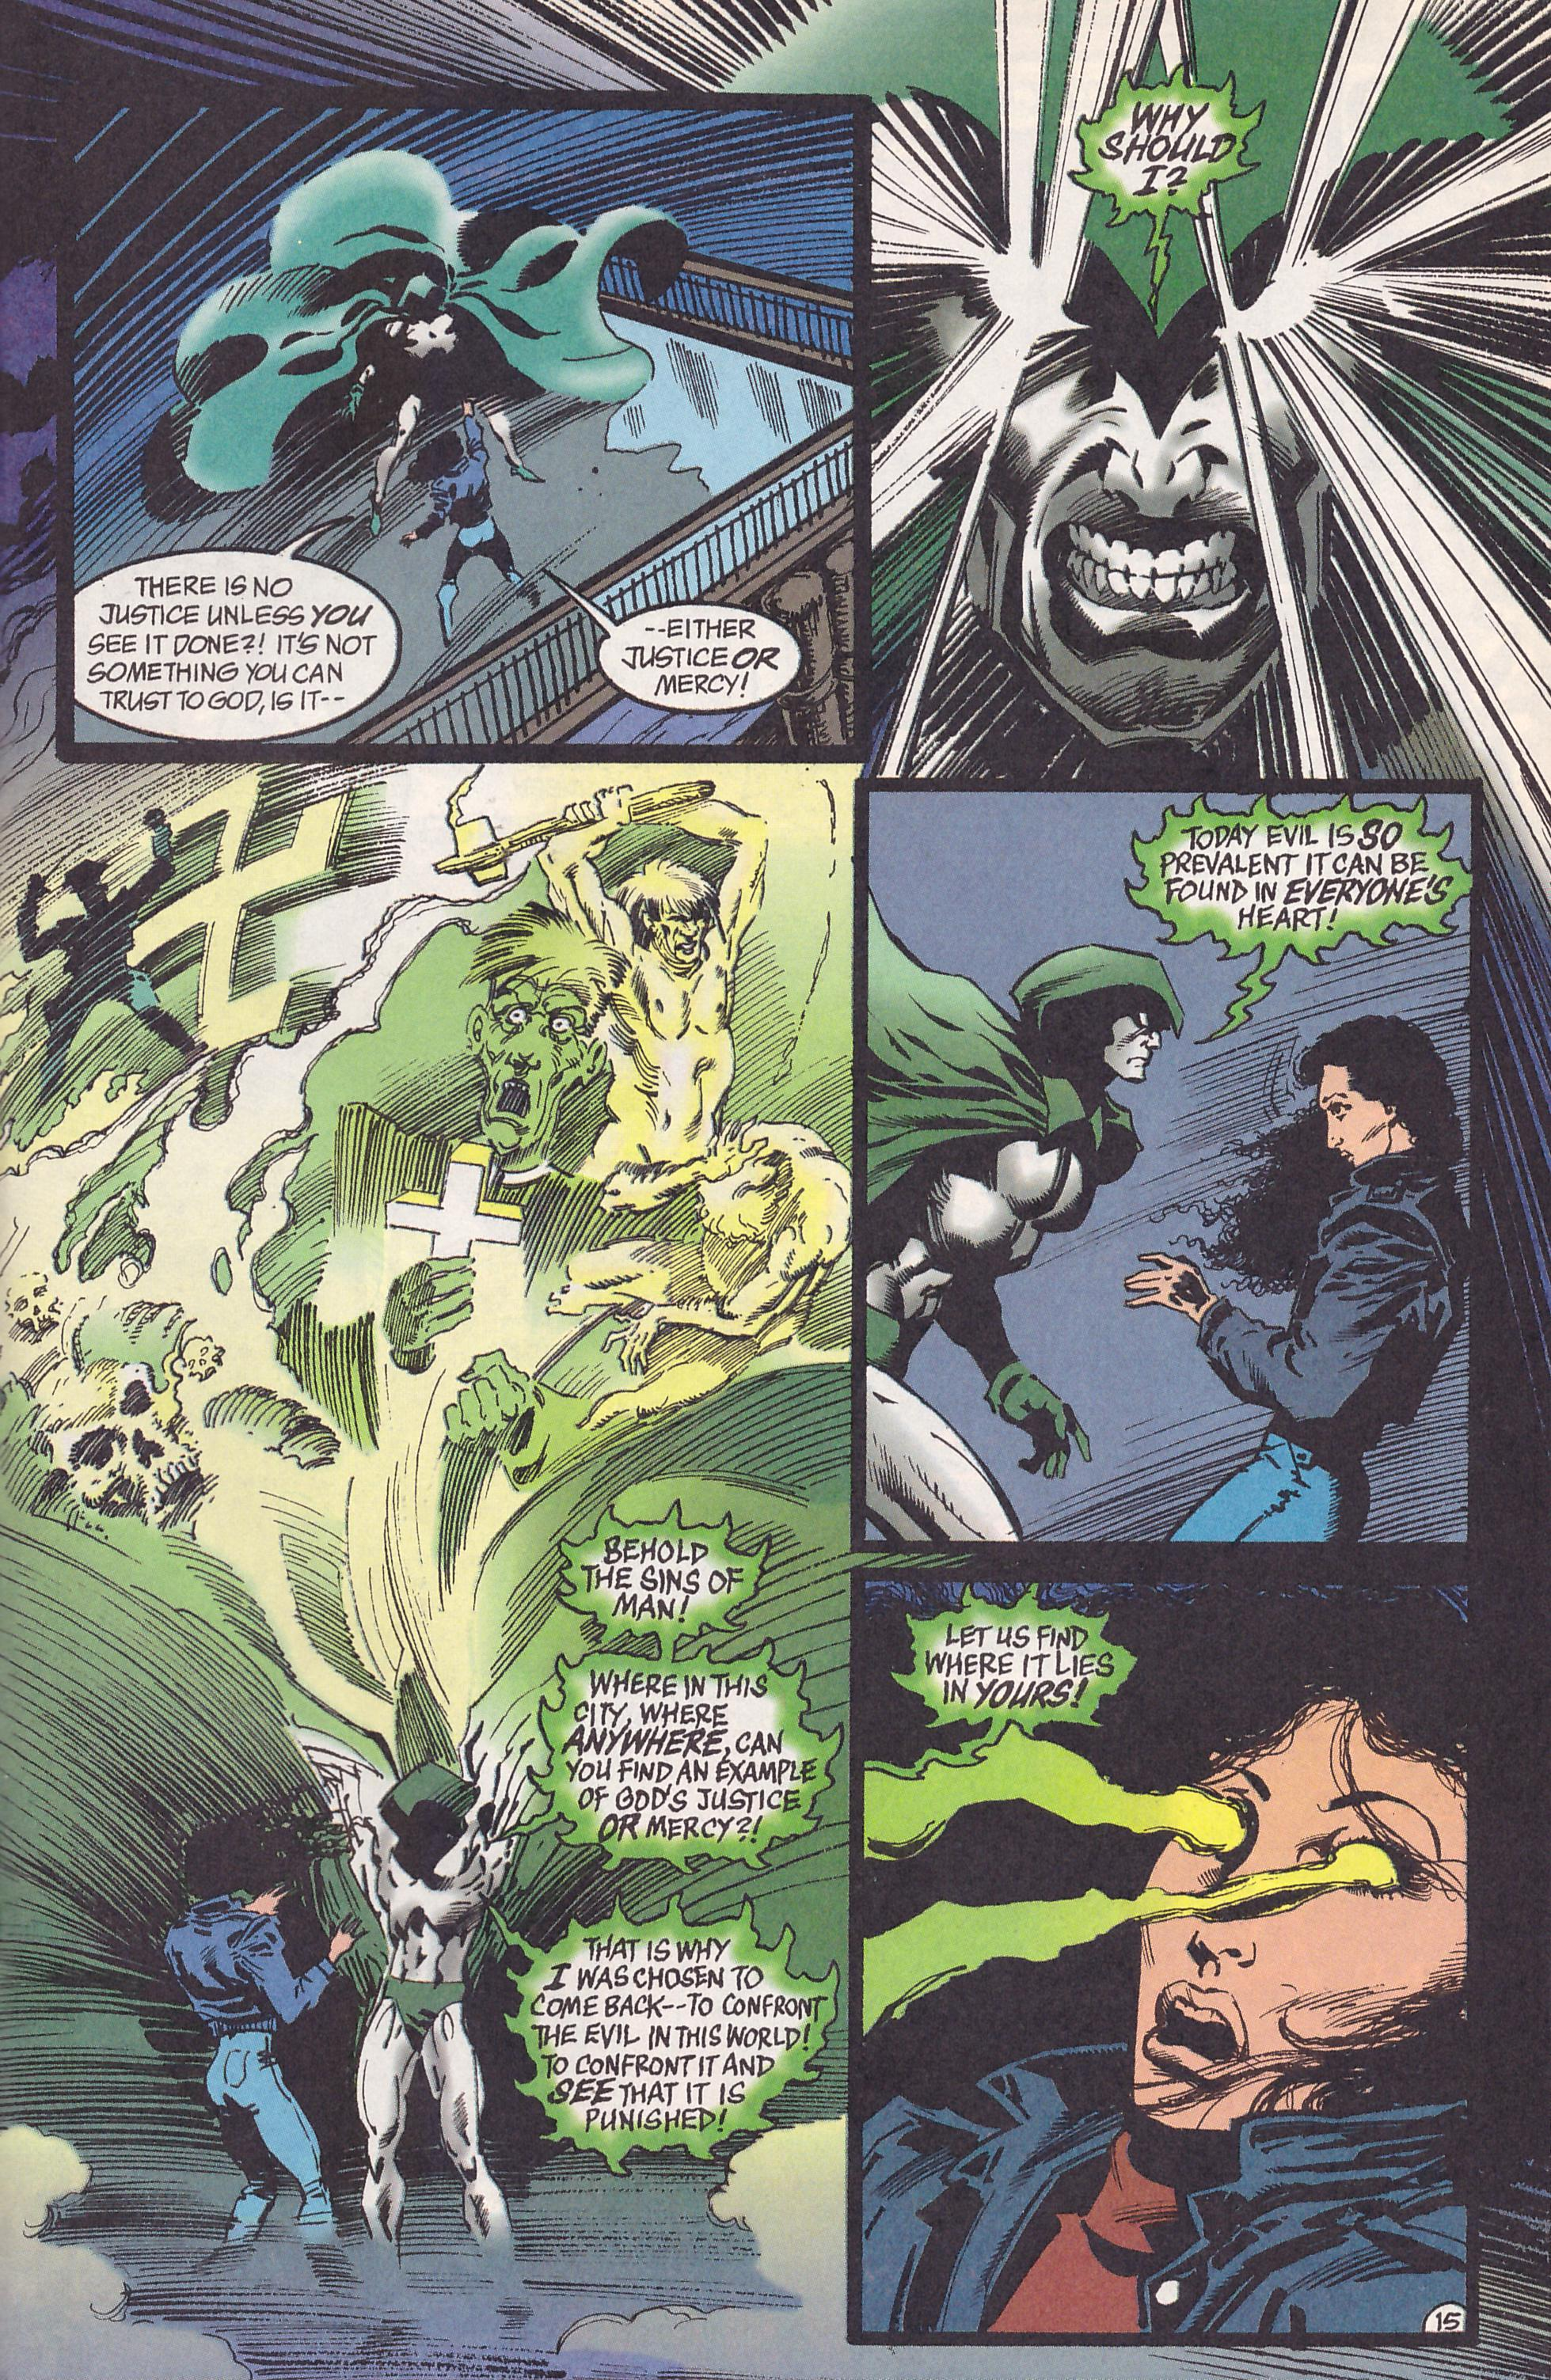 The Spectre Crimes and Judgments review